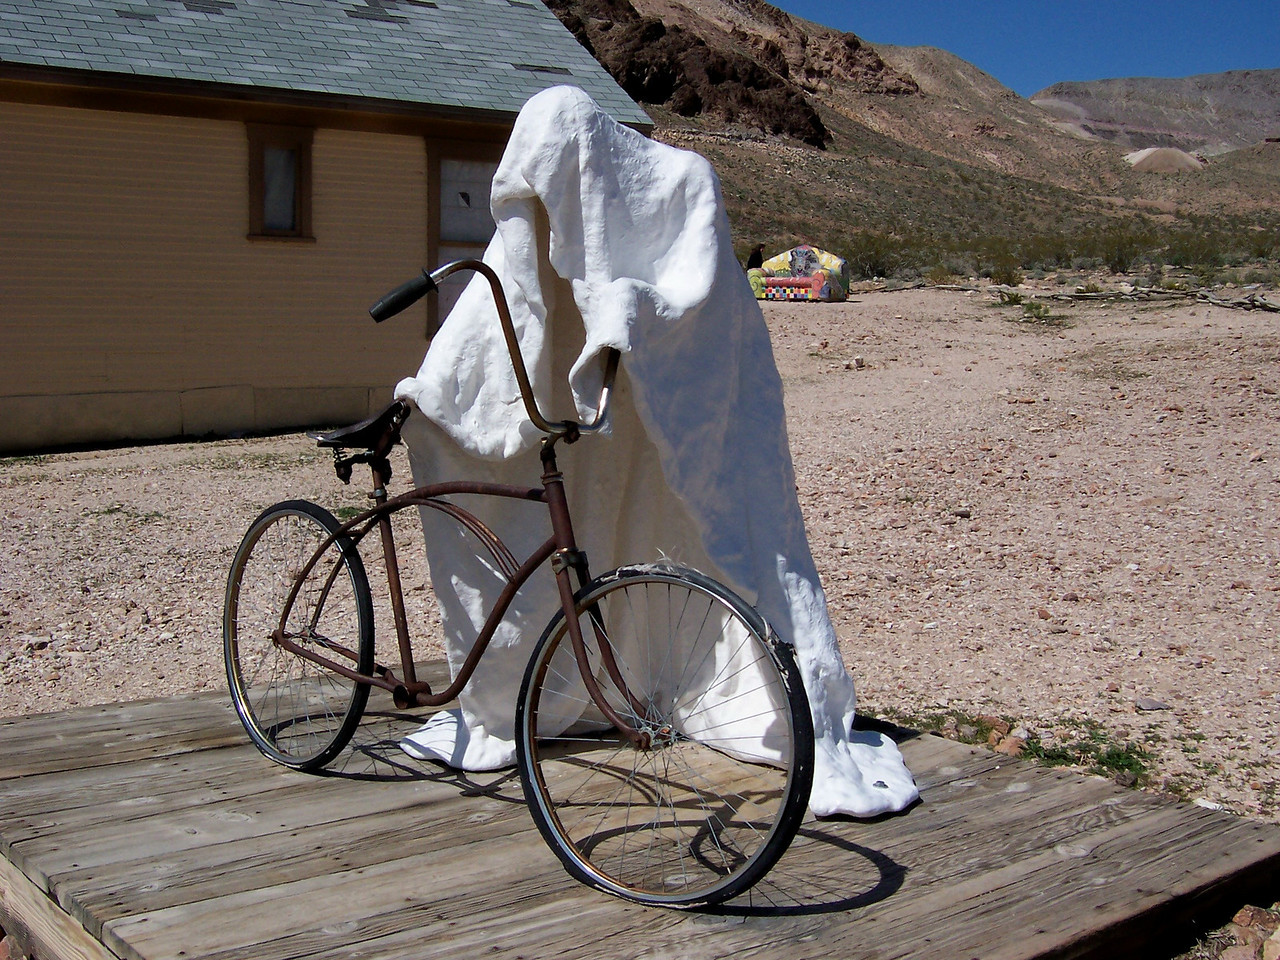 A ghost in a ghost town?